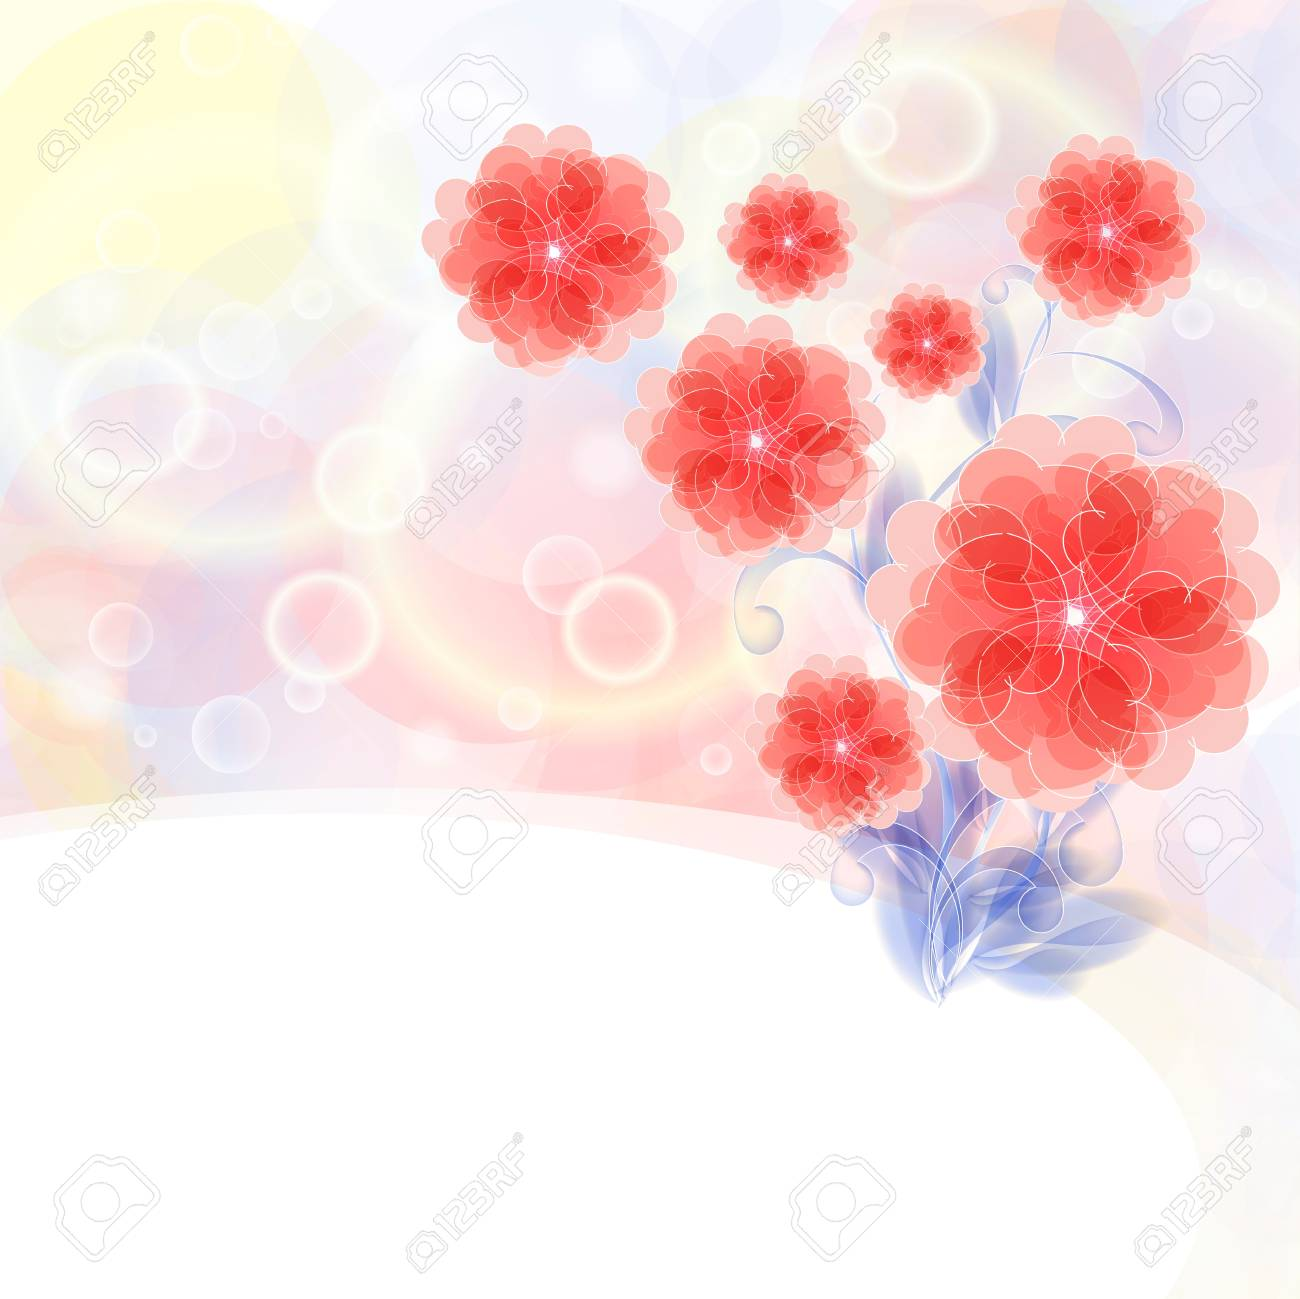 Flowers bright a background are more transparent Stock Vector - 15544249